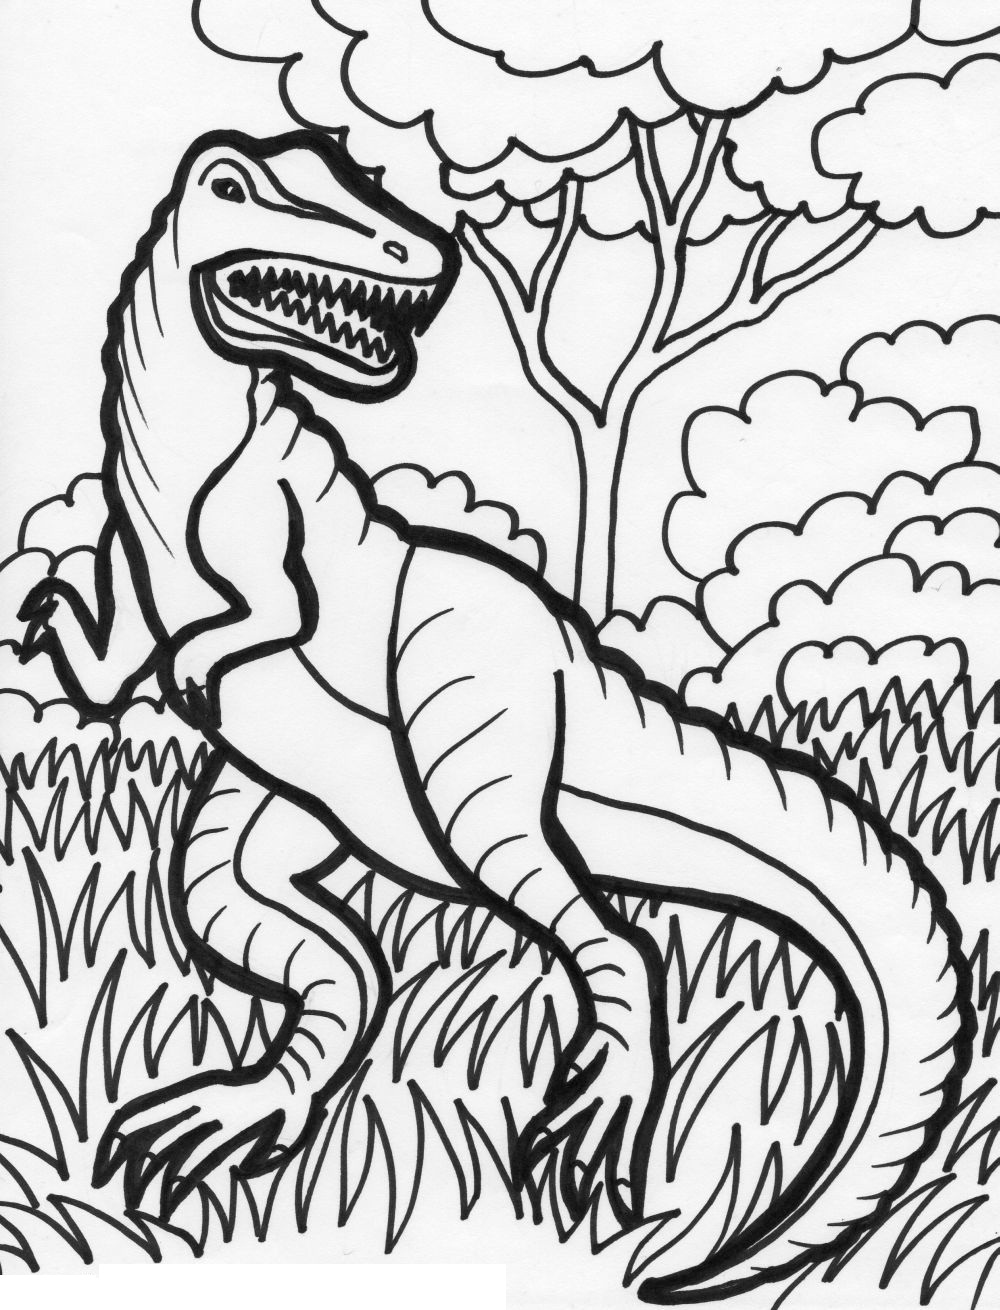 dinosaur coloring pages for kids funny dinosaur coloring page for kids printable free dinosaur coloring kids pages for